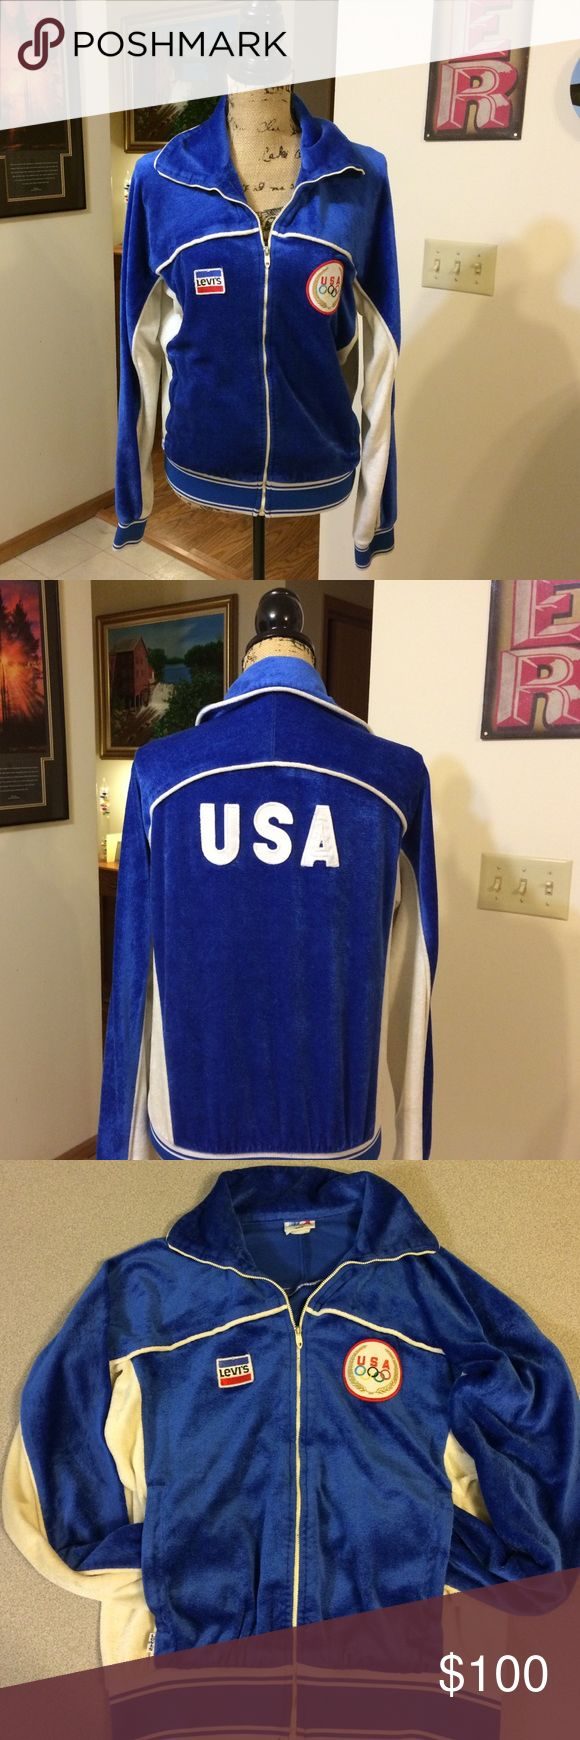 Vintage Levi's 1980's Olympic Track Jacket Authentic vintage item from Levi's! This rare jacket was endorsed by the Olympic Committee specifically for the 1980 Olympic Games held in Moscow. This jacket is unique because the manufacturer (Levi's) had a patch put on the right side across from the Olympic Rings patch on the left. It's a men's medium, but is simple enough style to be unisex. Great condition give its age with no rips or holes. Fully functional front pockets and zip closure…